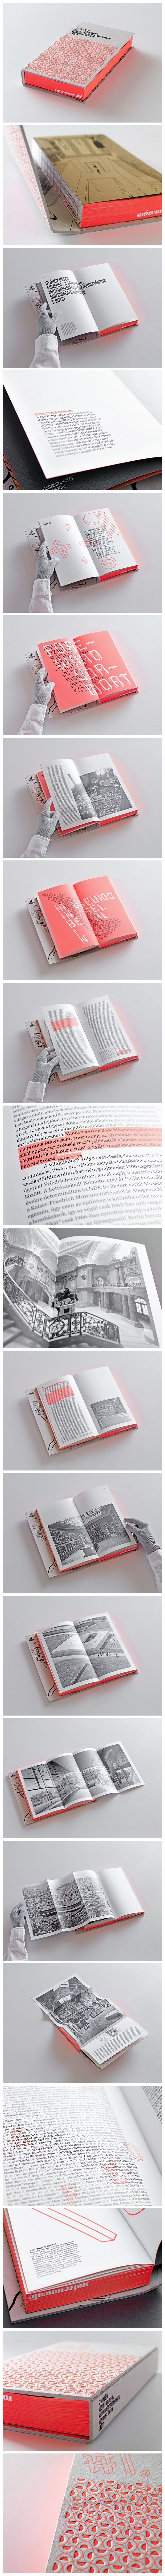 MúzeumCafé Books #1 Museum – A House for Learning Museum Theoretical Case Studies This publication is the first volume of a Hungarian museum professional series published by the Museum of Fine Arts, Budapest. It is written by university professor Péter György, director of ELTE's Institute for Art Theory and Media Studies, and Doctor of the Hungarian Academy of Sciences.